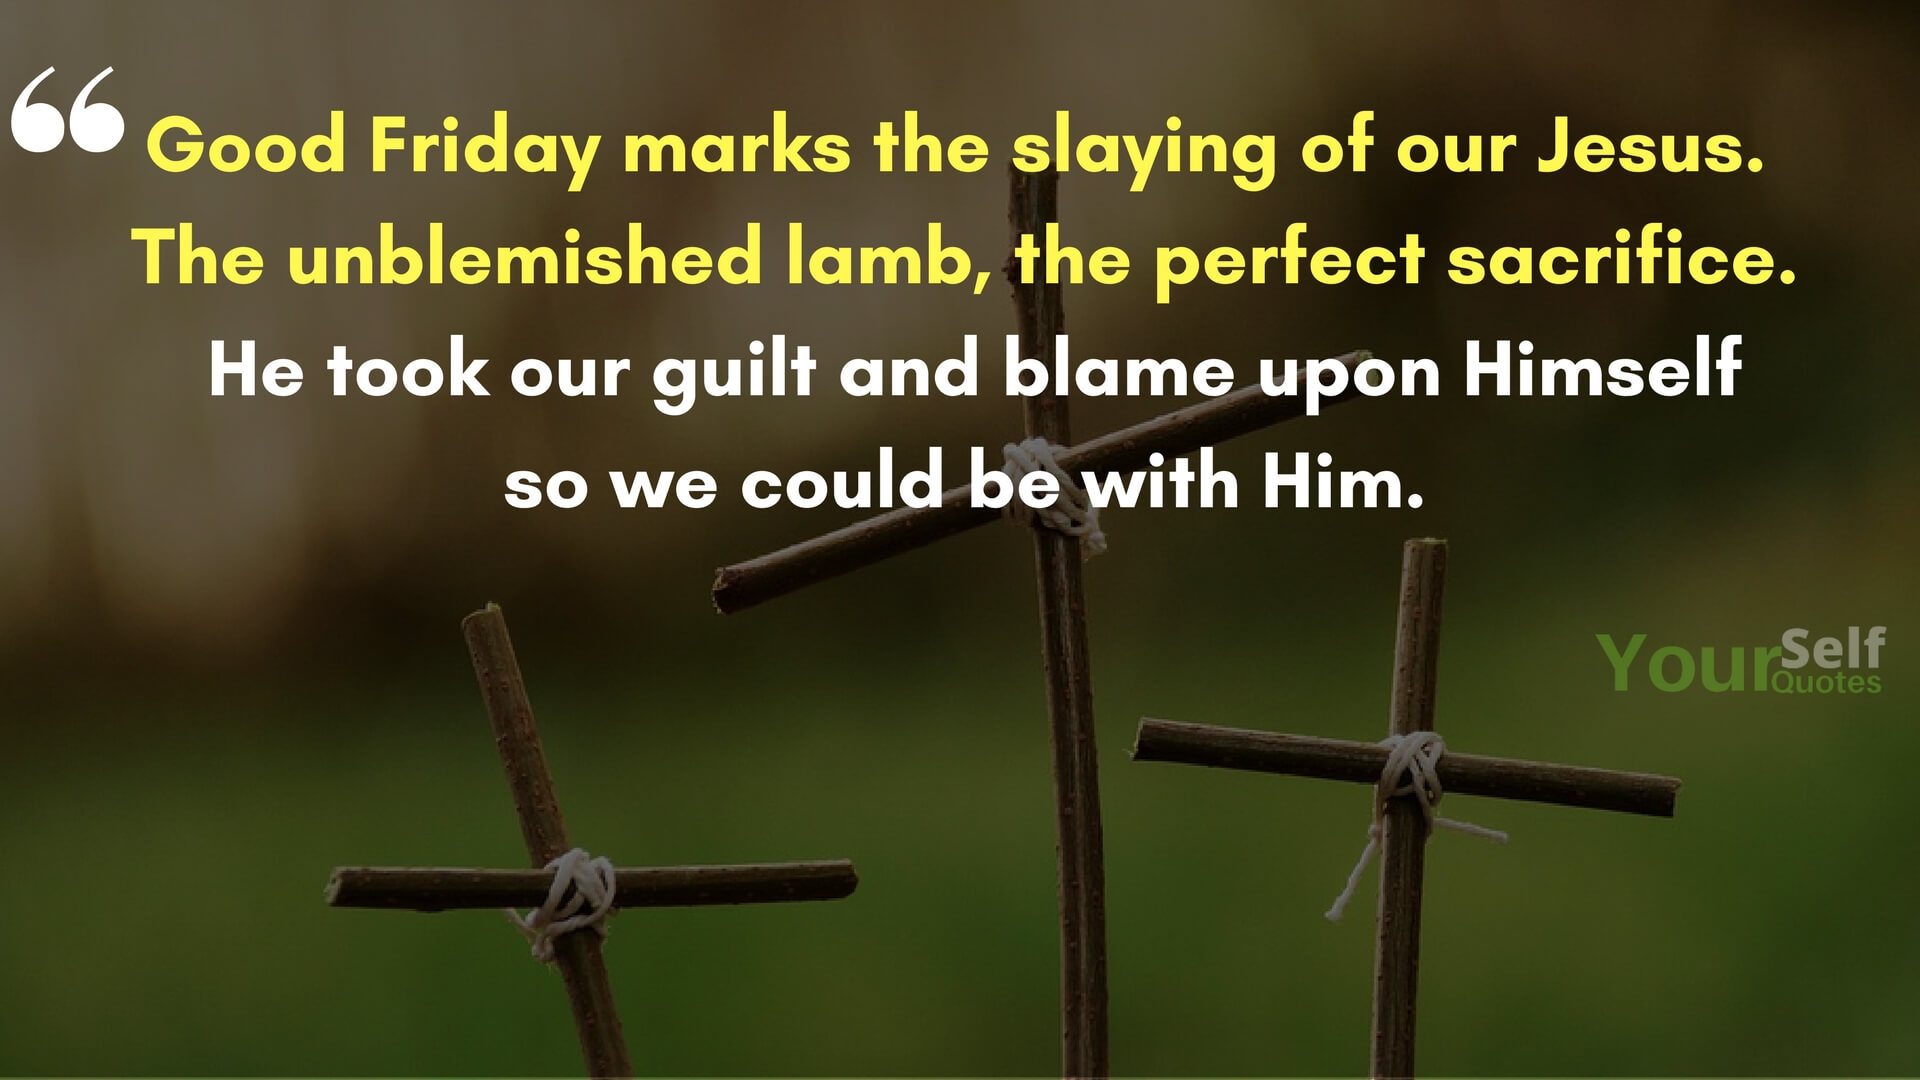 Good Friday Marks The Slaying Of Our Jesus